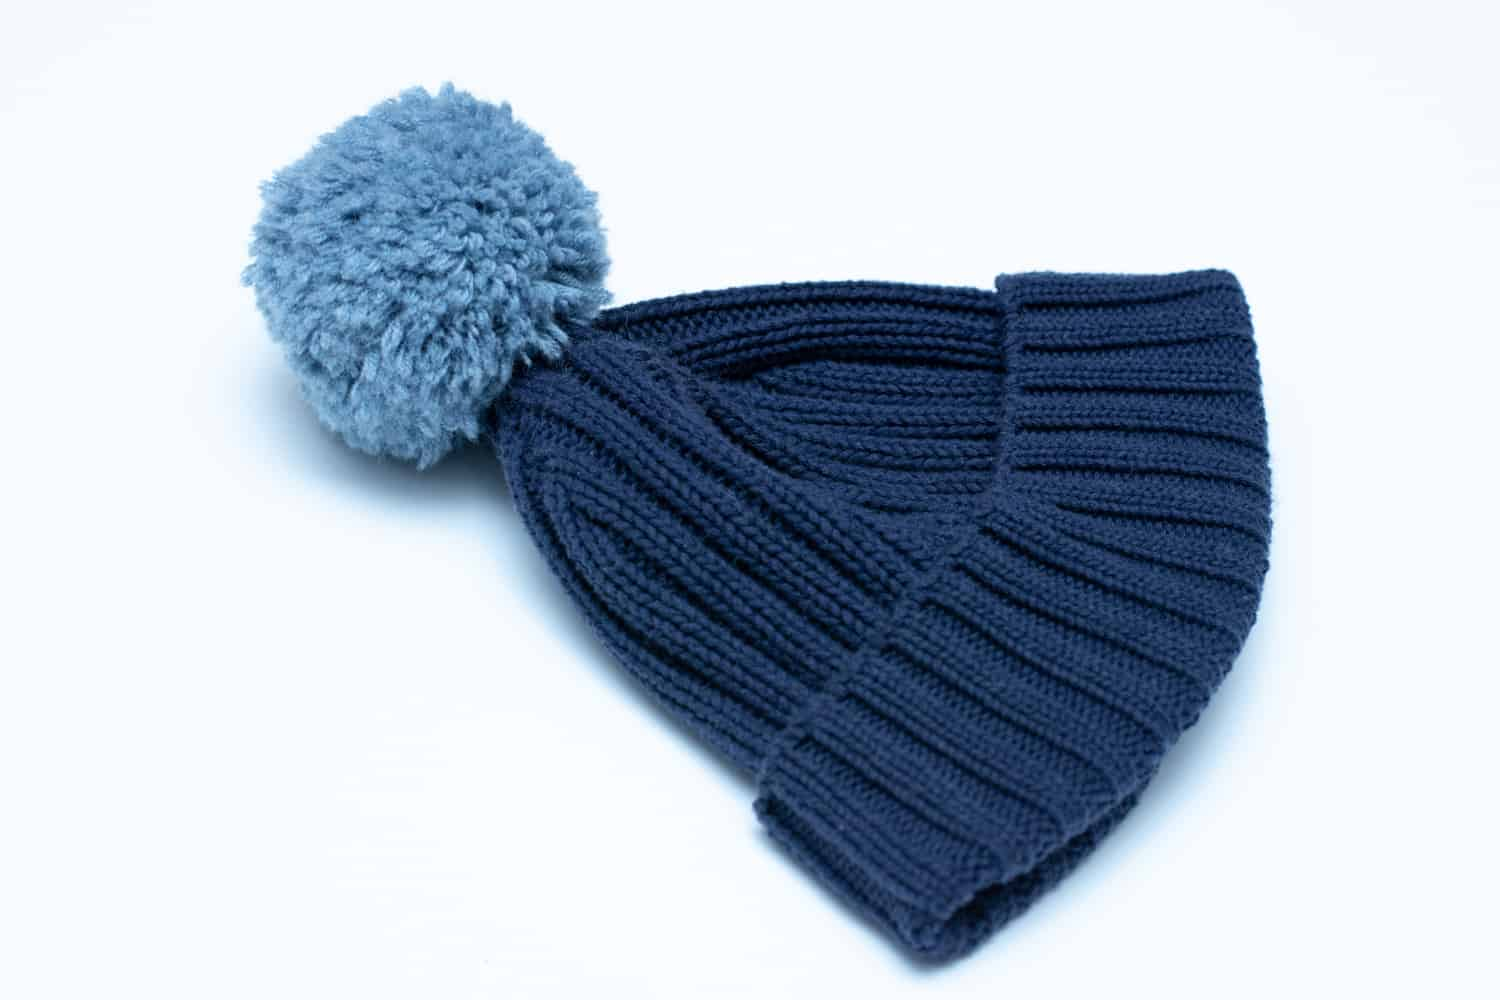 How to make a pom-pom for your knit hat and beanie